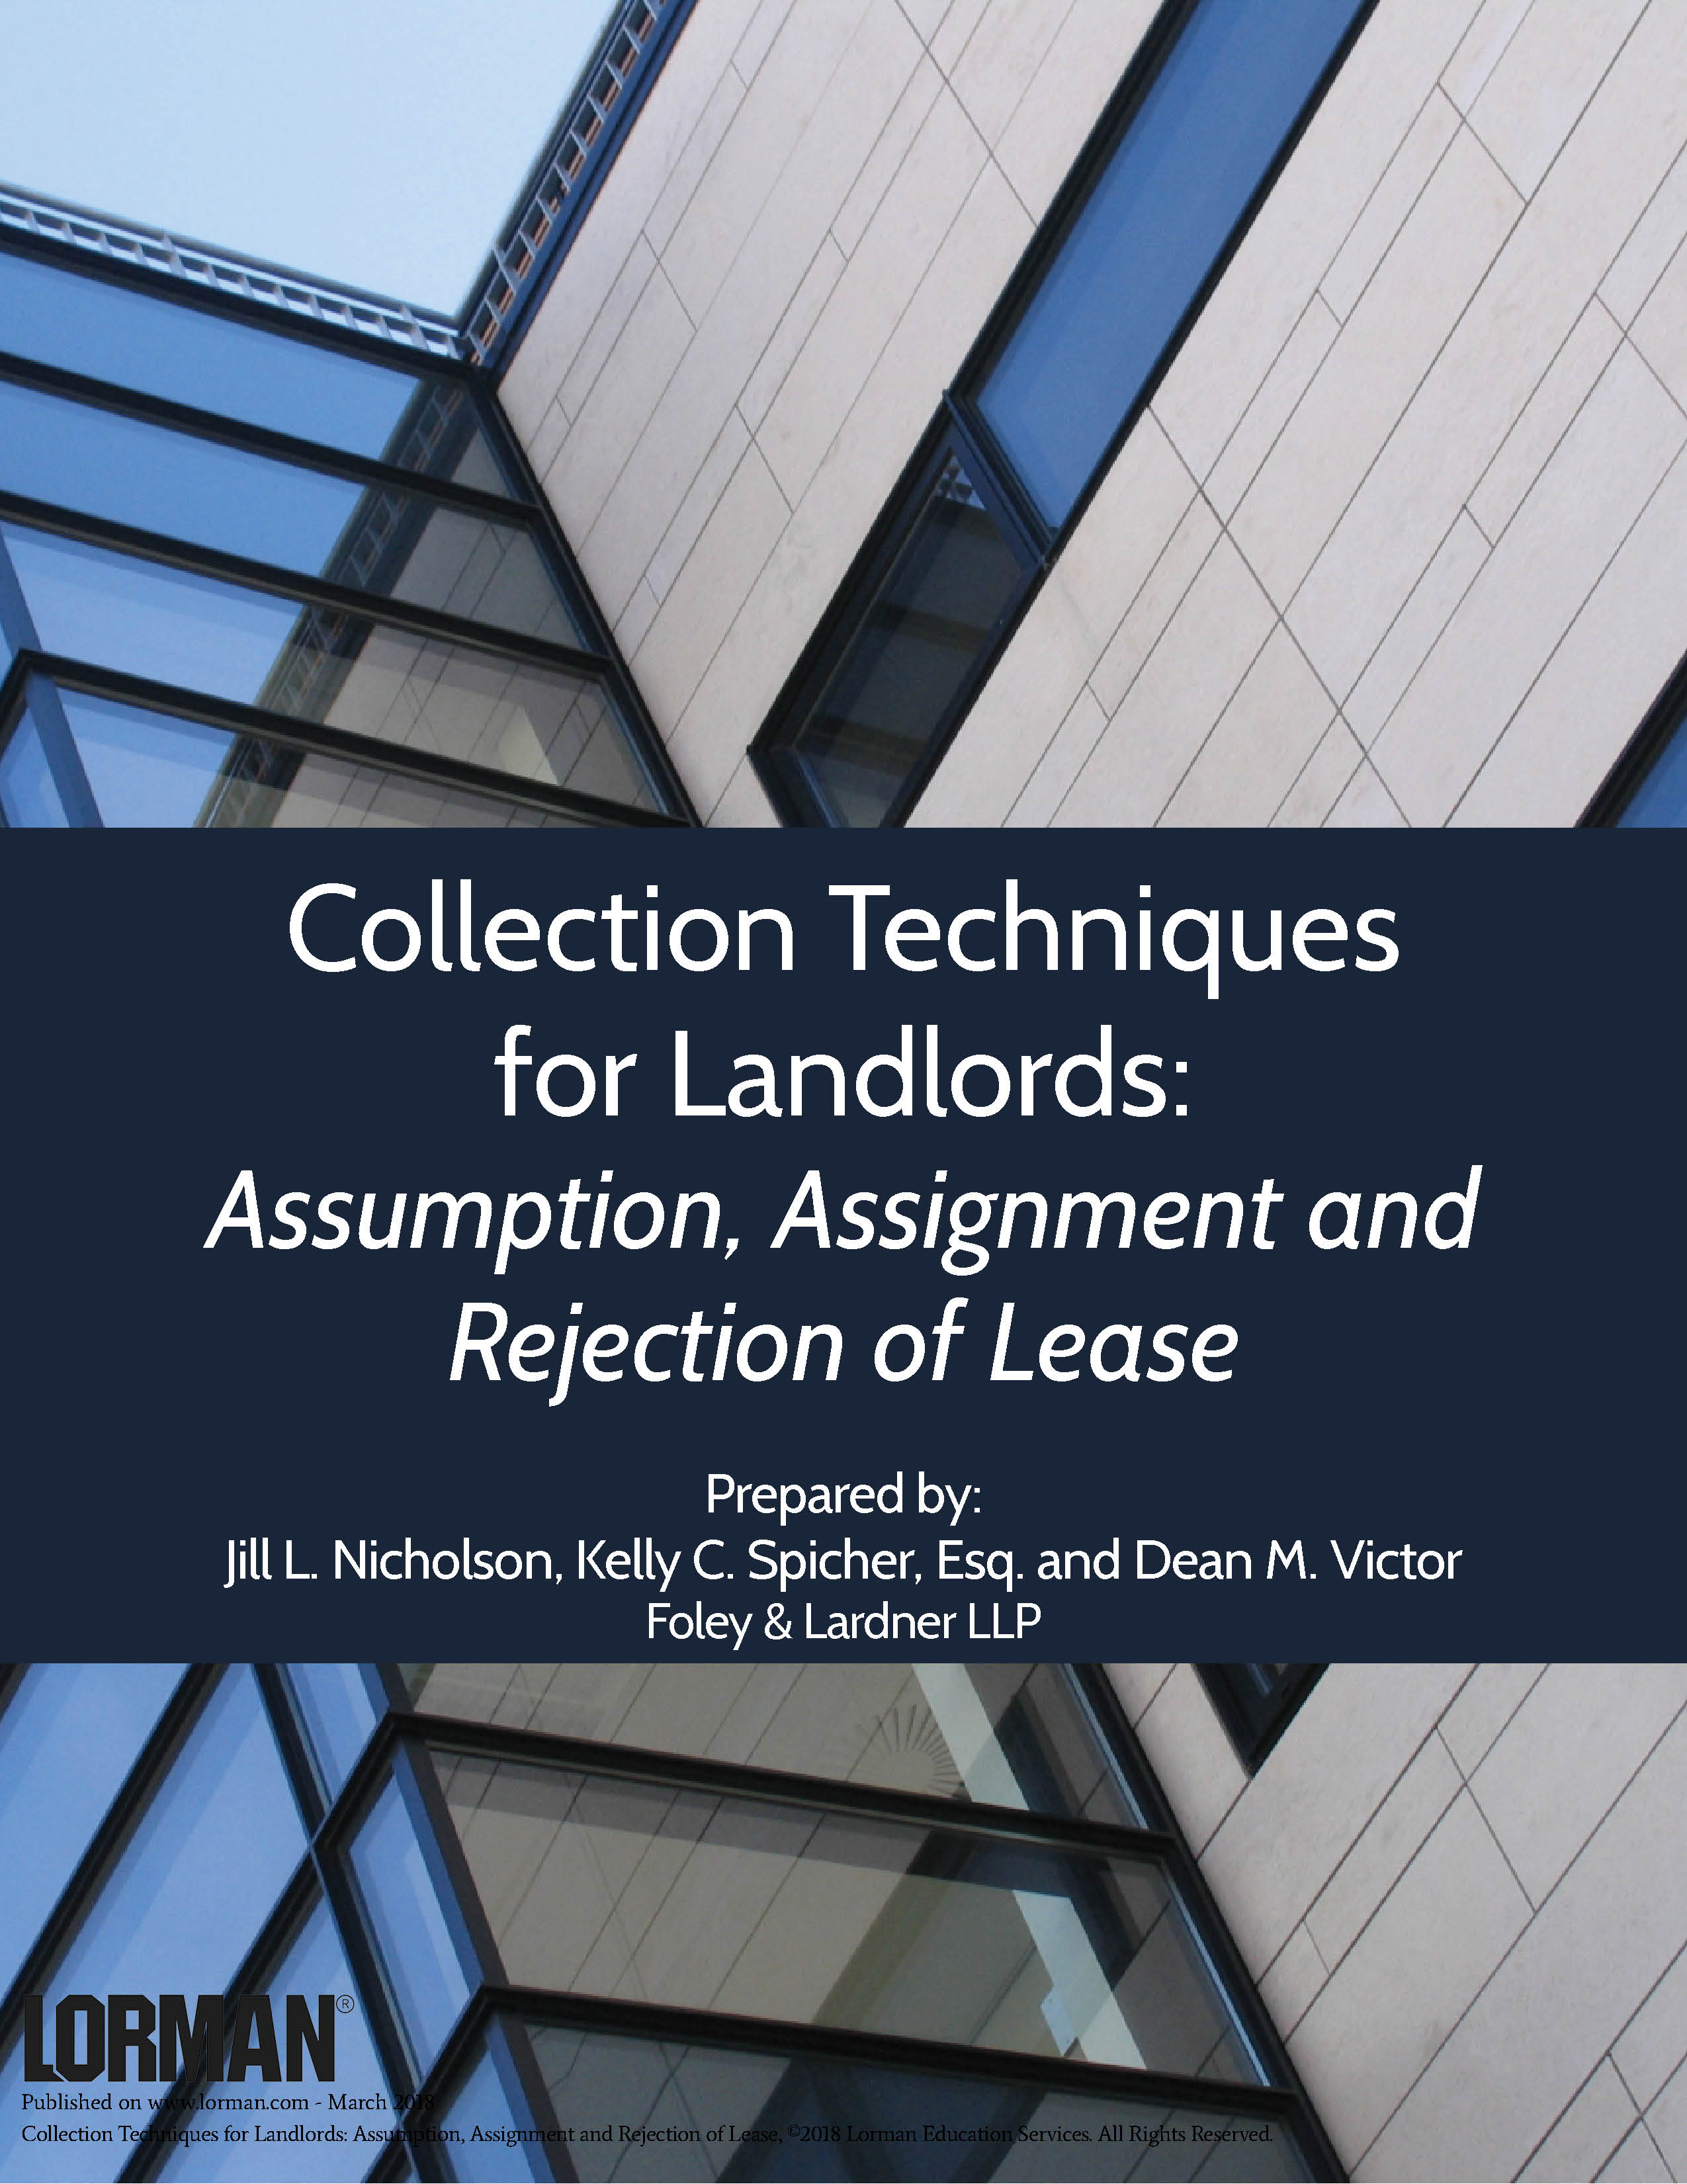 Collection Techniques for Landlords: Assumption, Assignment and Rejection of Lease